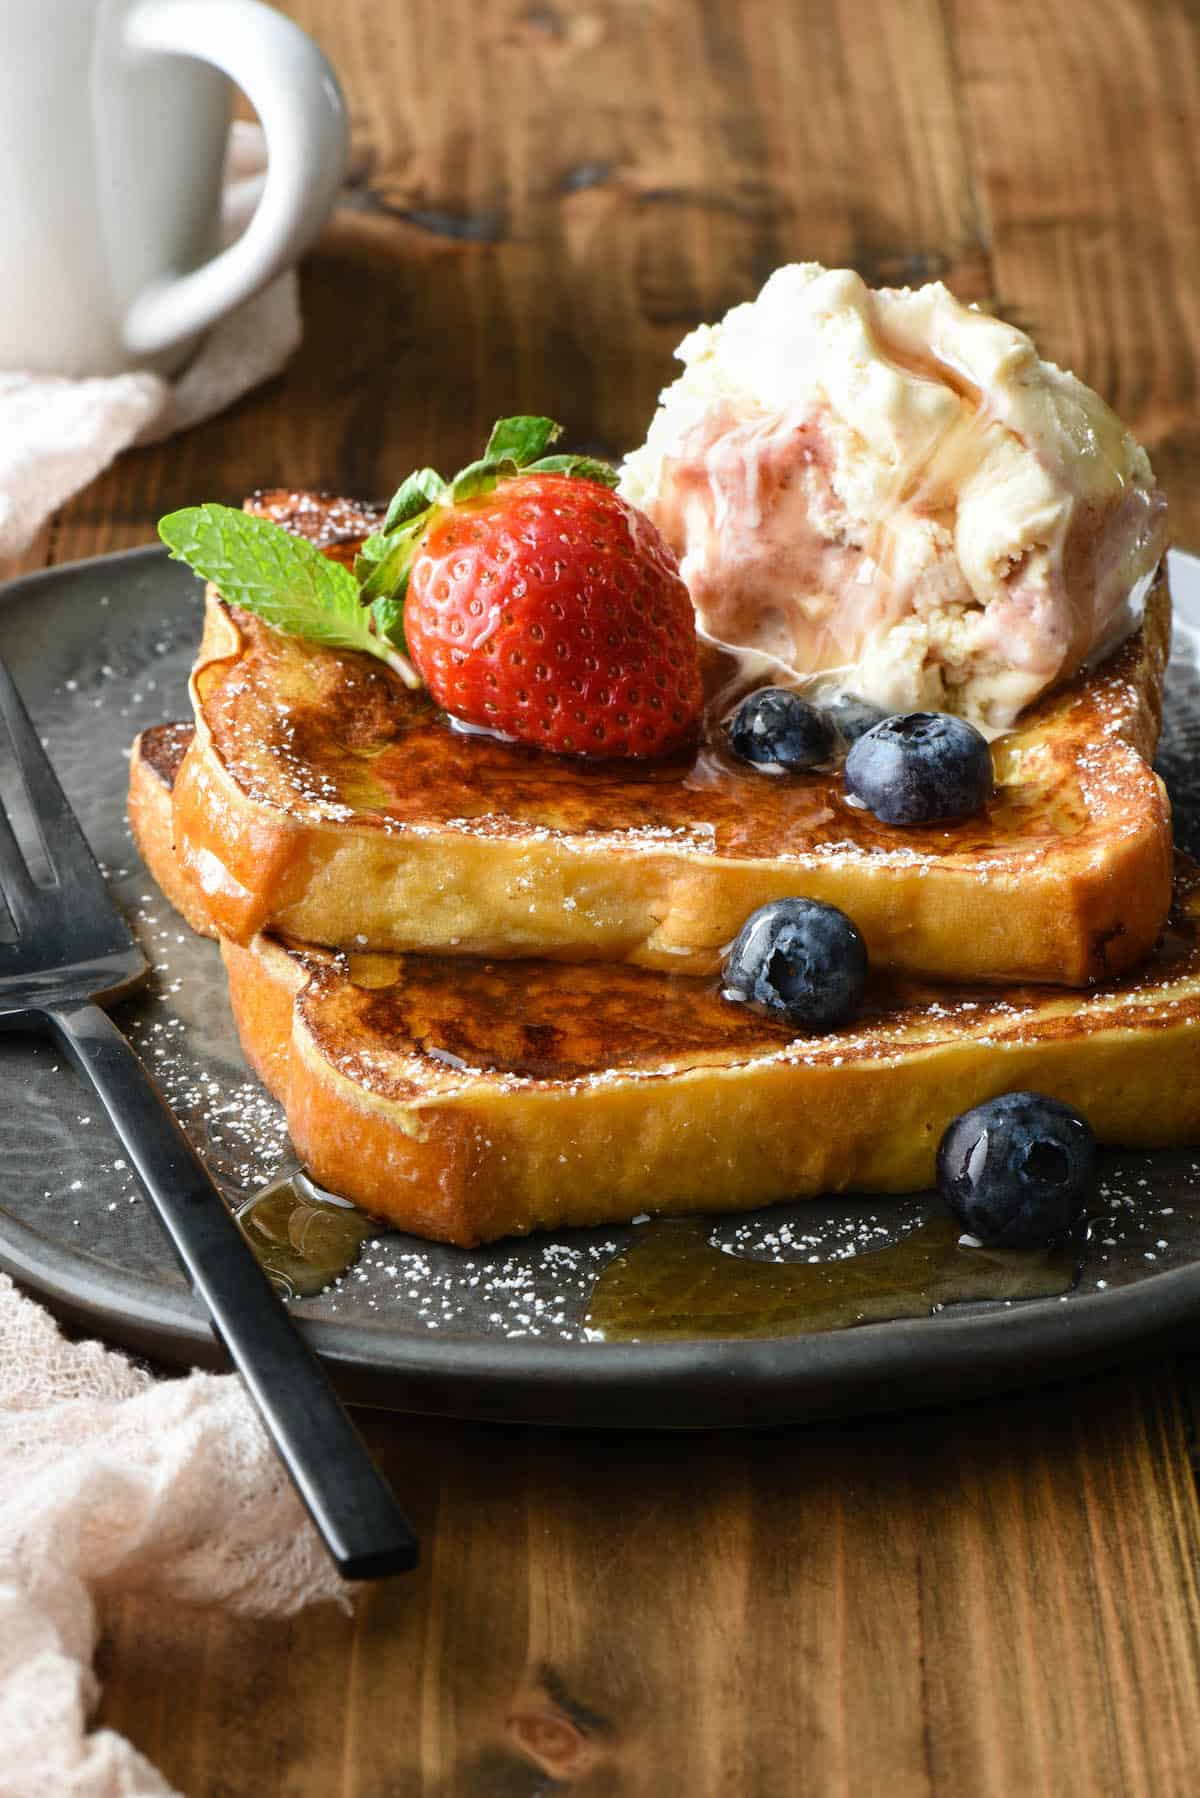 This Brioche French Toast is made with a secret ingredient! This easy-to-follow recipe makes a simple and sweet breakfast treat the whole family will love. | foxeslovelemons.com